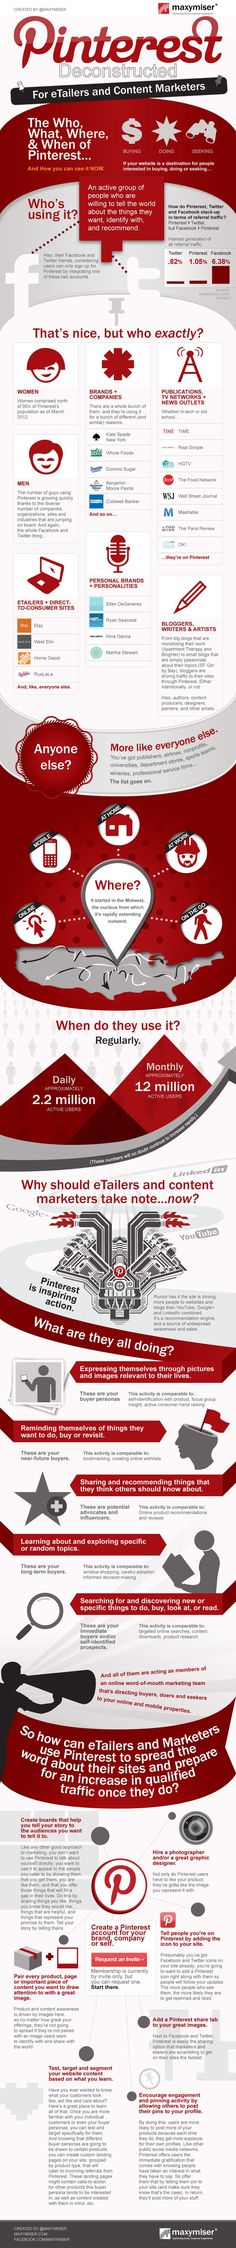 The Who, What, Where & When of #Pinterest [infographic]: http://goo.gl/jghbh /@BerriePeler - #Pinterest #Pin